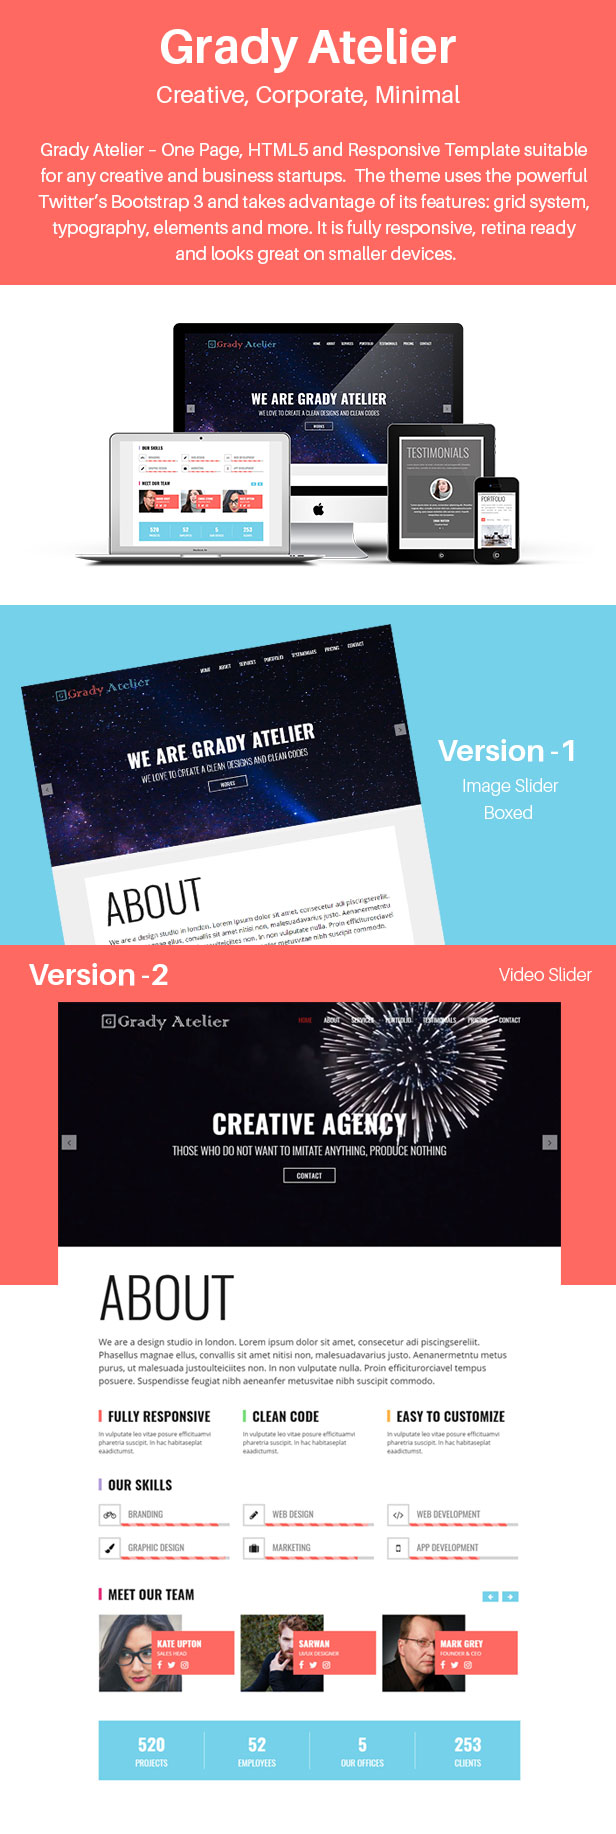 Grady Atelier One Page Responsive Html5 Template By Themesfolio